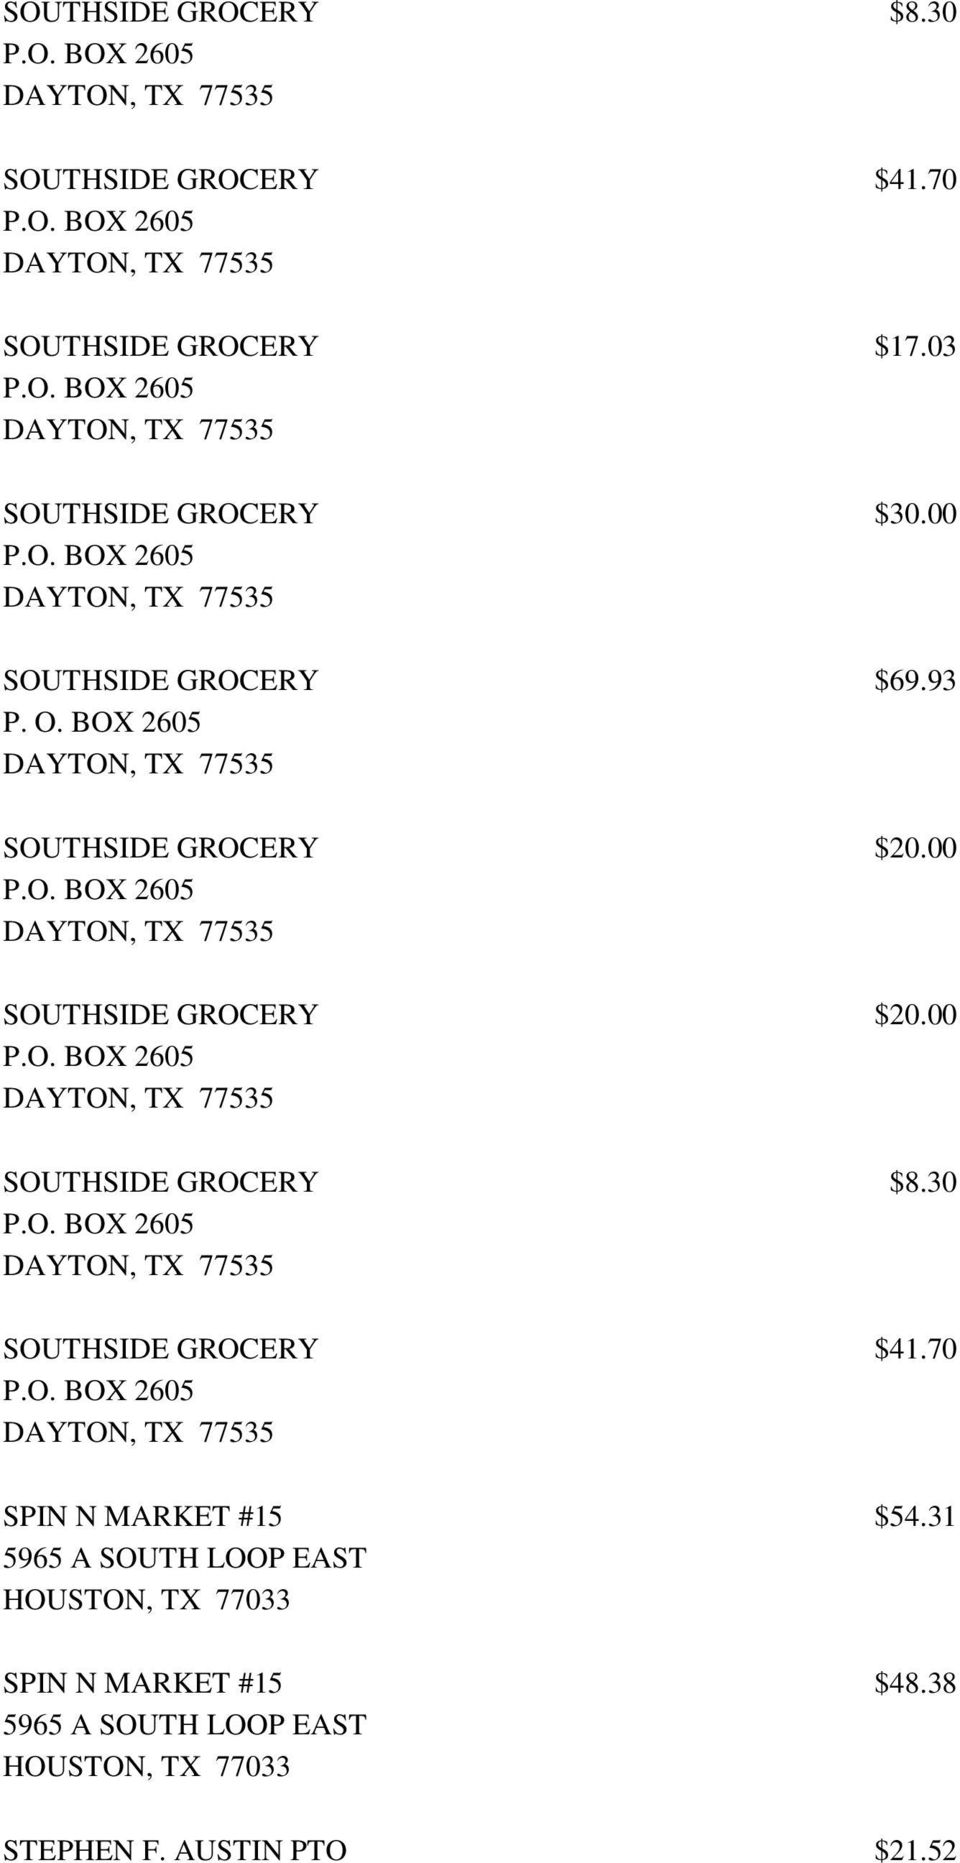 30 P.O. BOX 2605 SOUTHSIDE GROCERY $41.70 P.O. BOX 2605 SPIN N MARKET #15 $54.